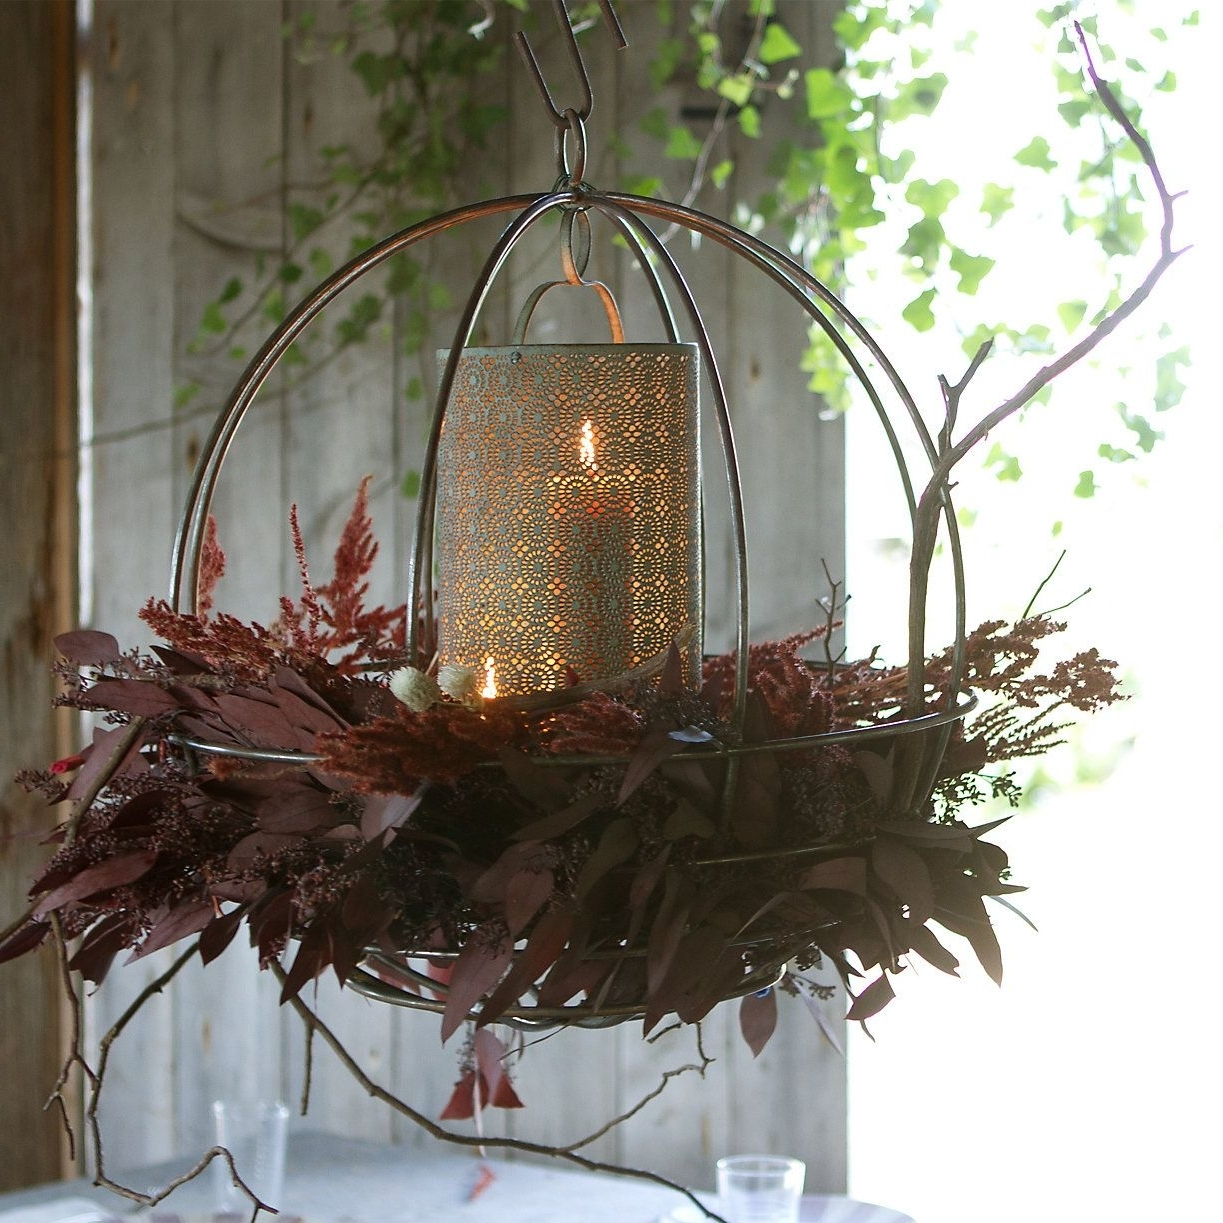 Widely Used Sphere Hanging Basket In Outdoor Living Garden Décor Lighting At Throughout Outdoor Hanging Basket Lights (View 4 of 20)